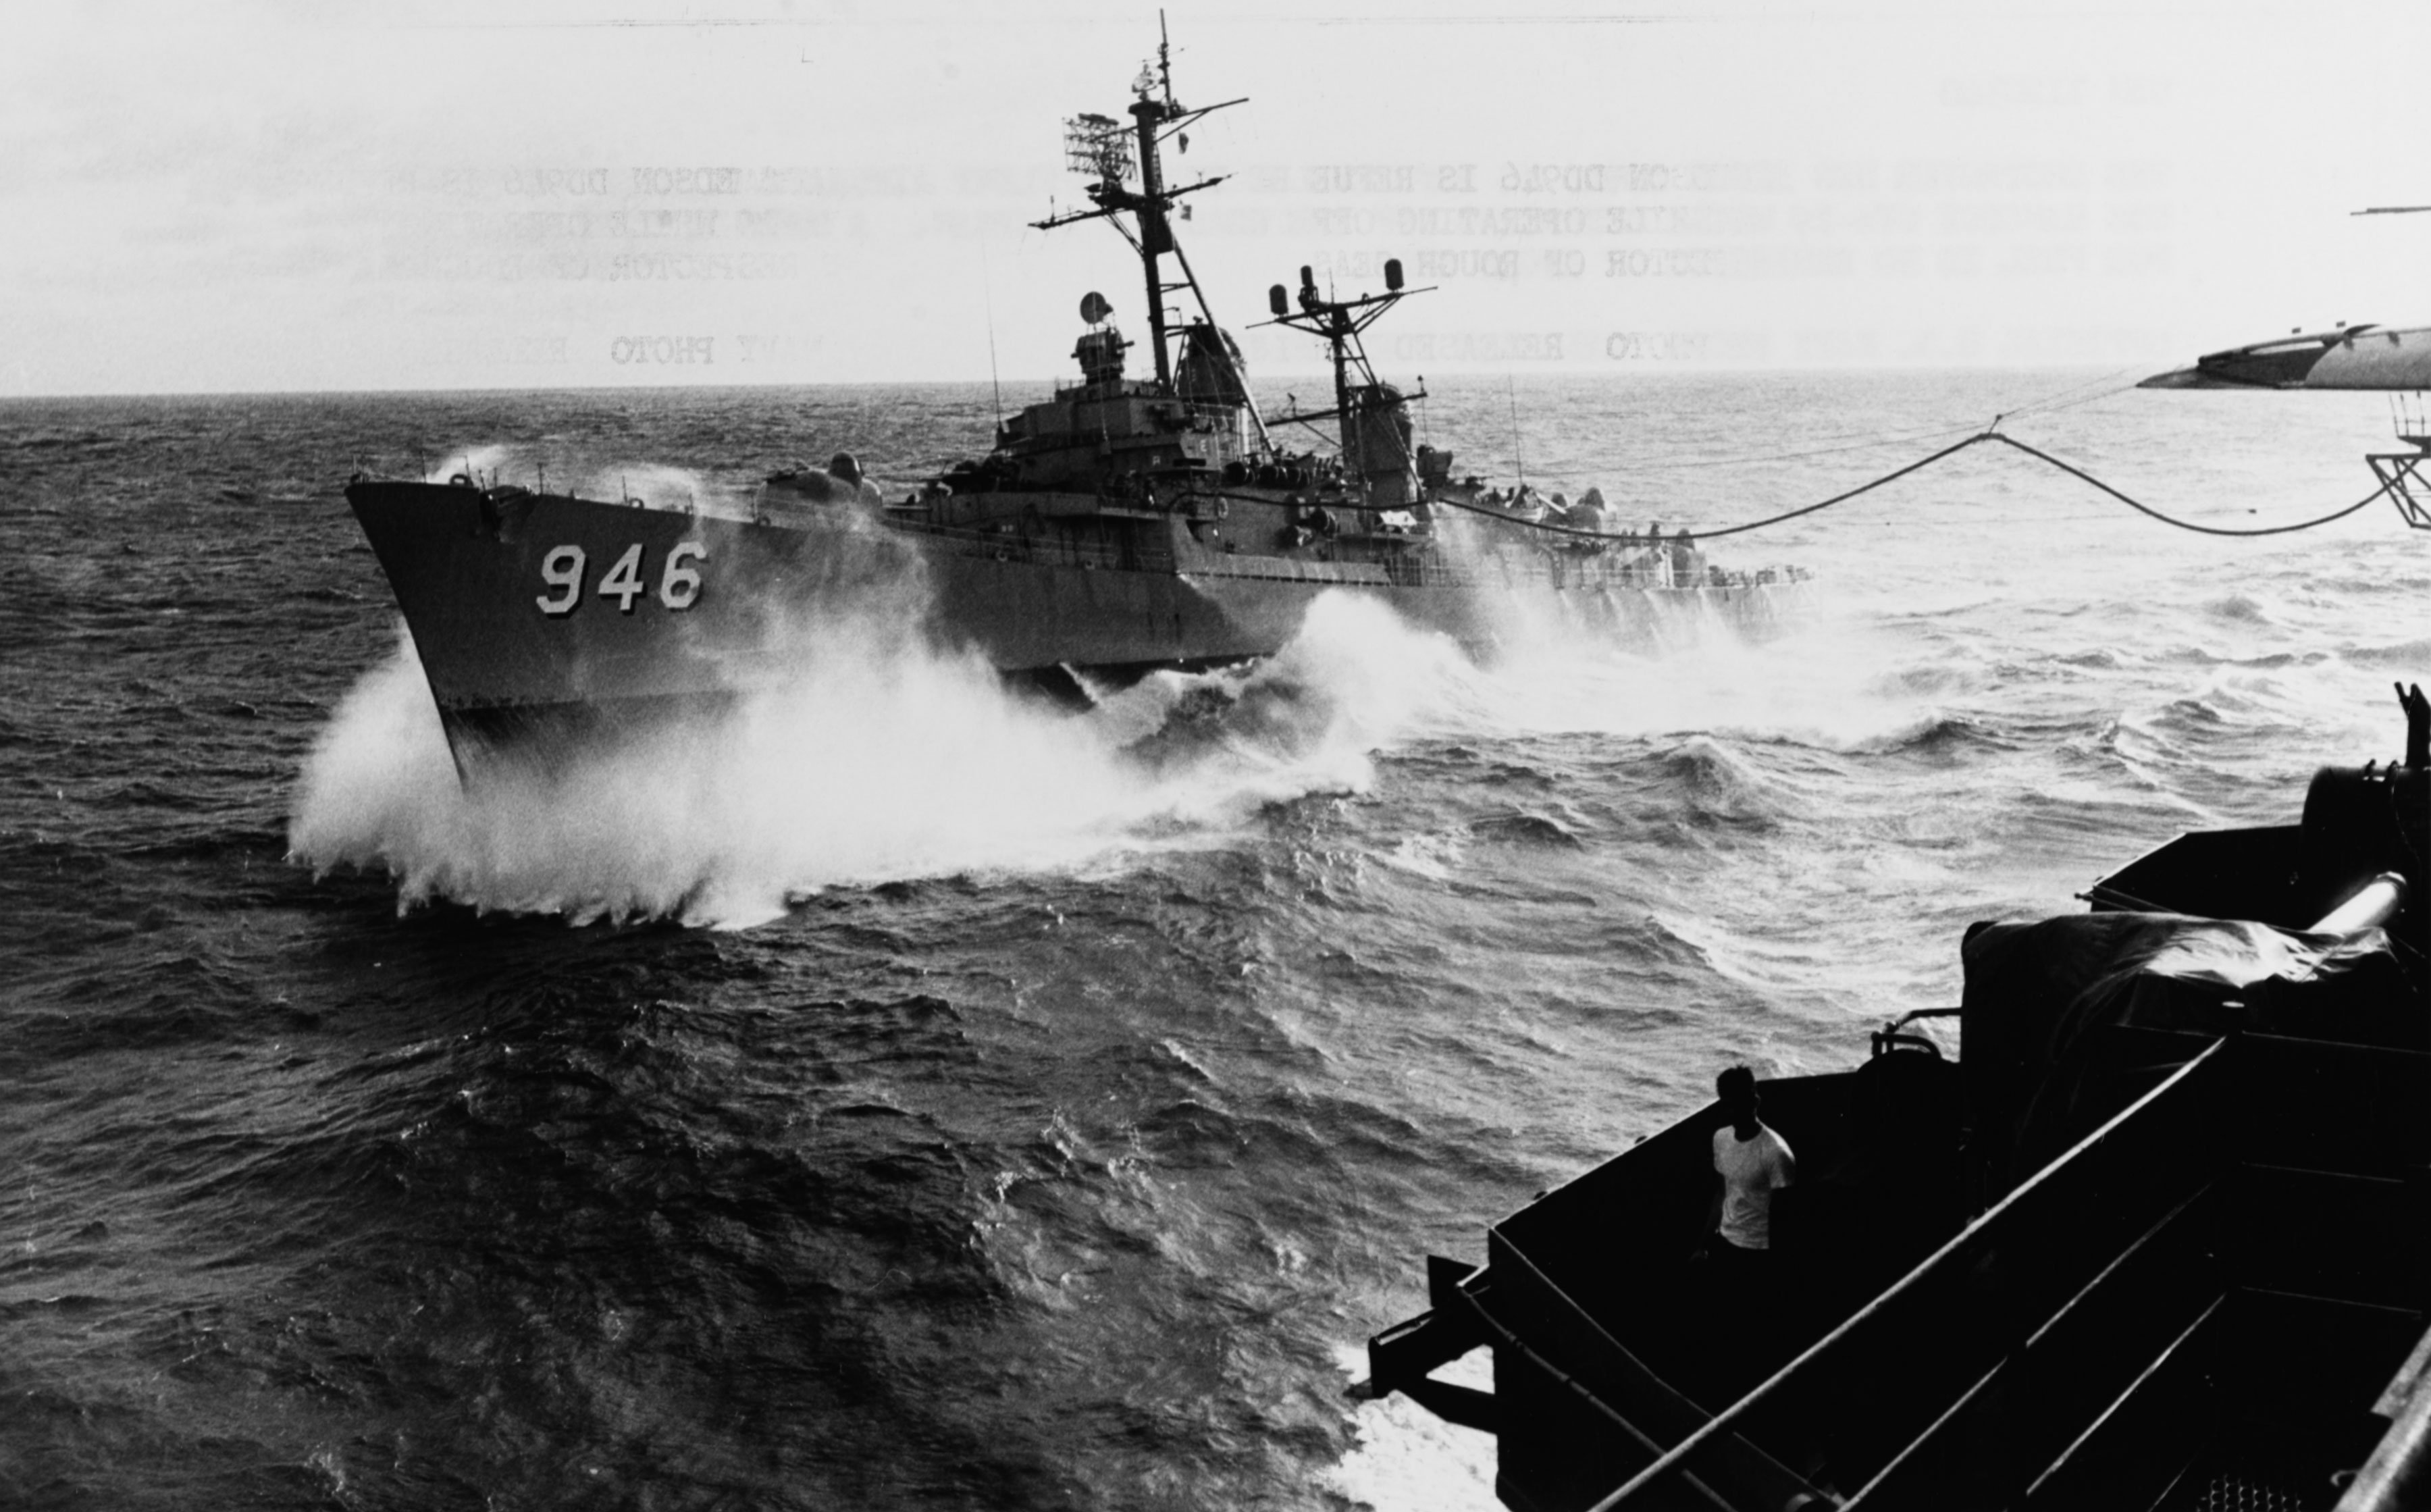 The Edson in heavy seas off the coast of Vietnam